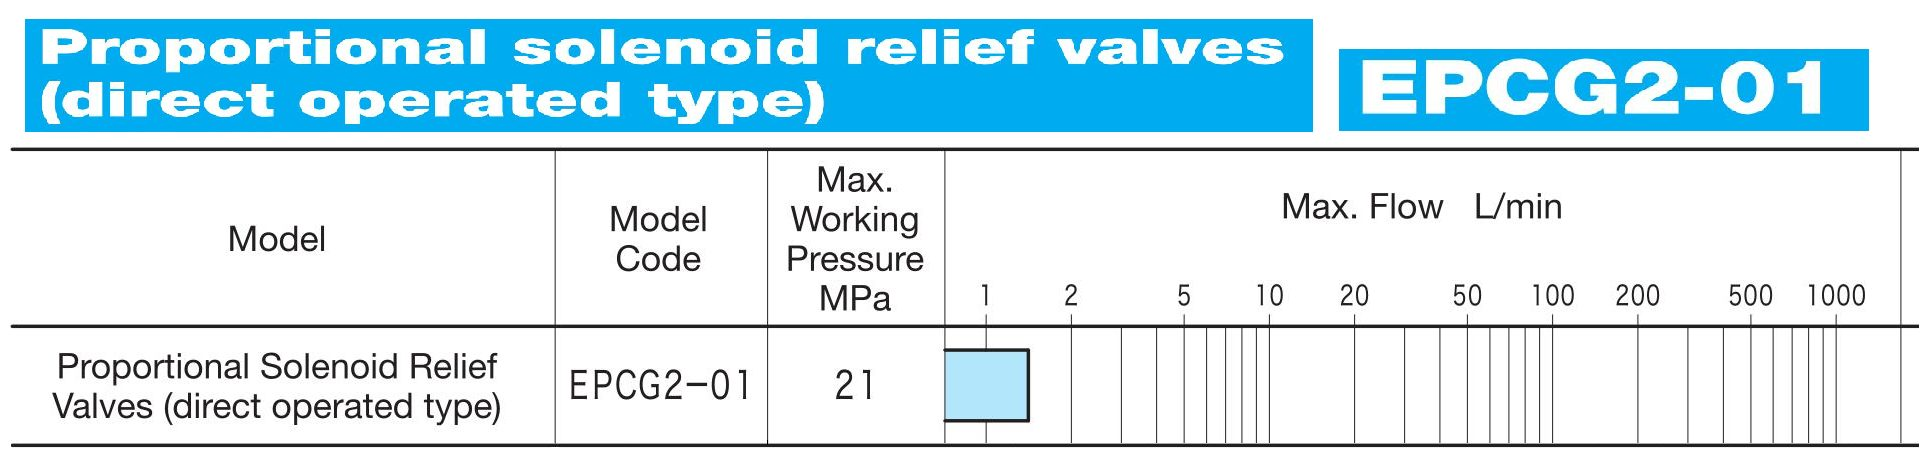 Epcg2 01 Proportional Solenoid Relief Valves Direct Operated Type 15 Wiring Diagram Of Hydraulic Circuit Pressure The Valve Provides Control To Input Current By Connecting With Small Flow Systems